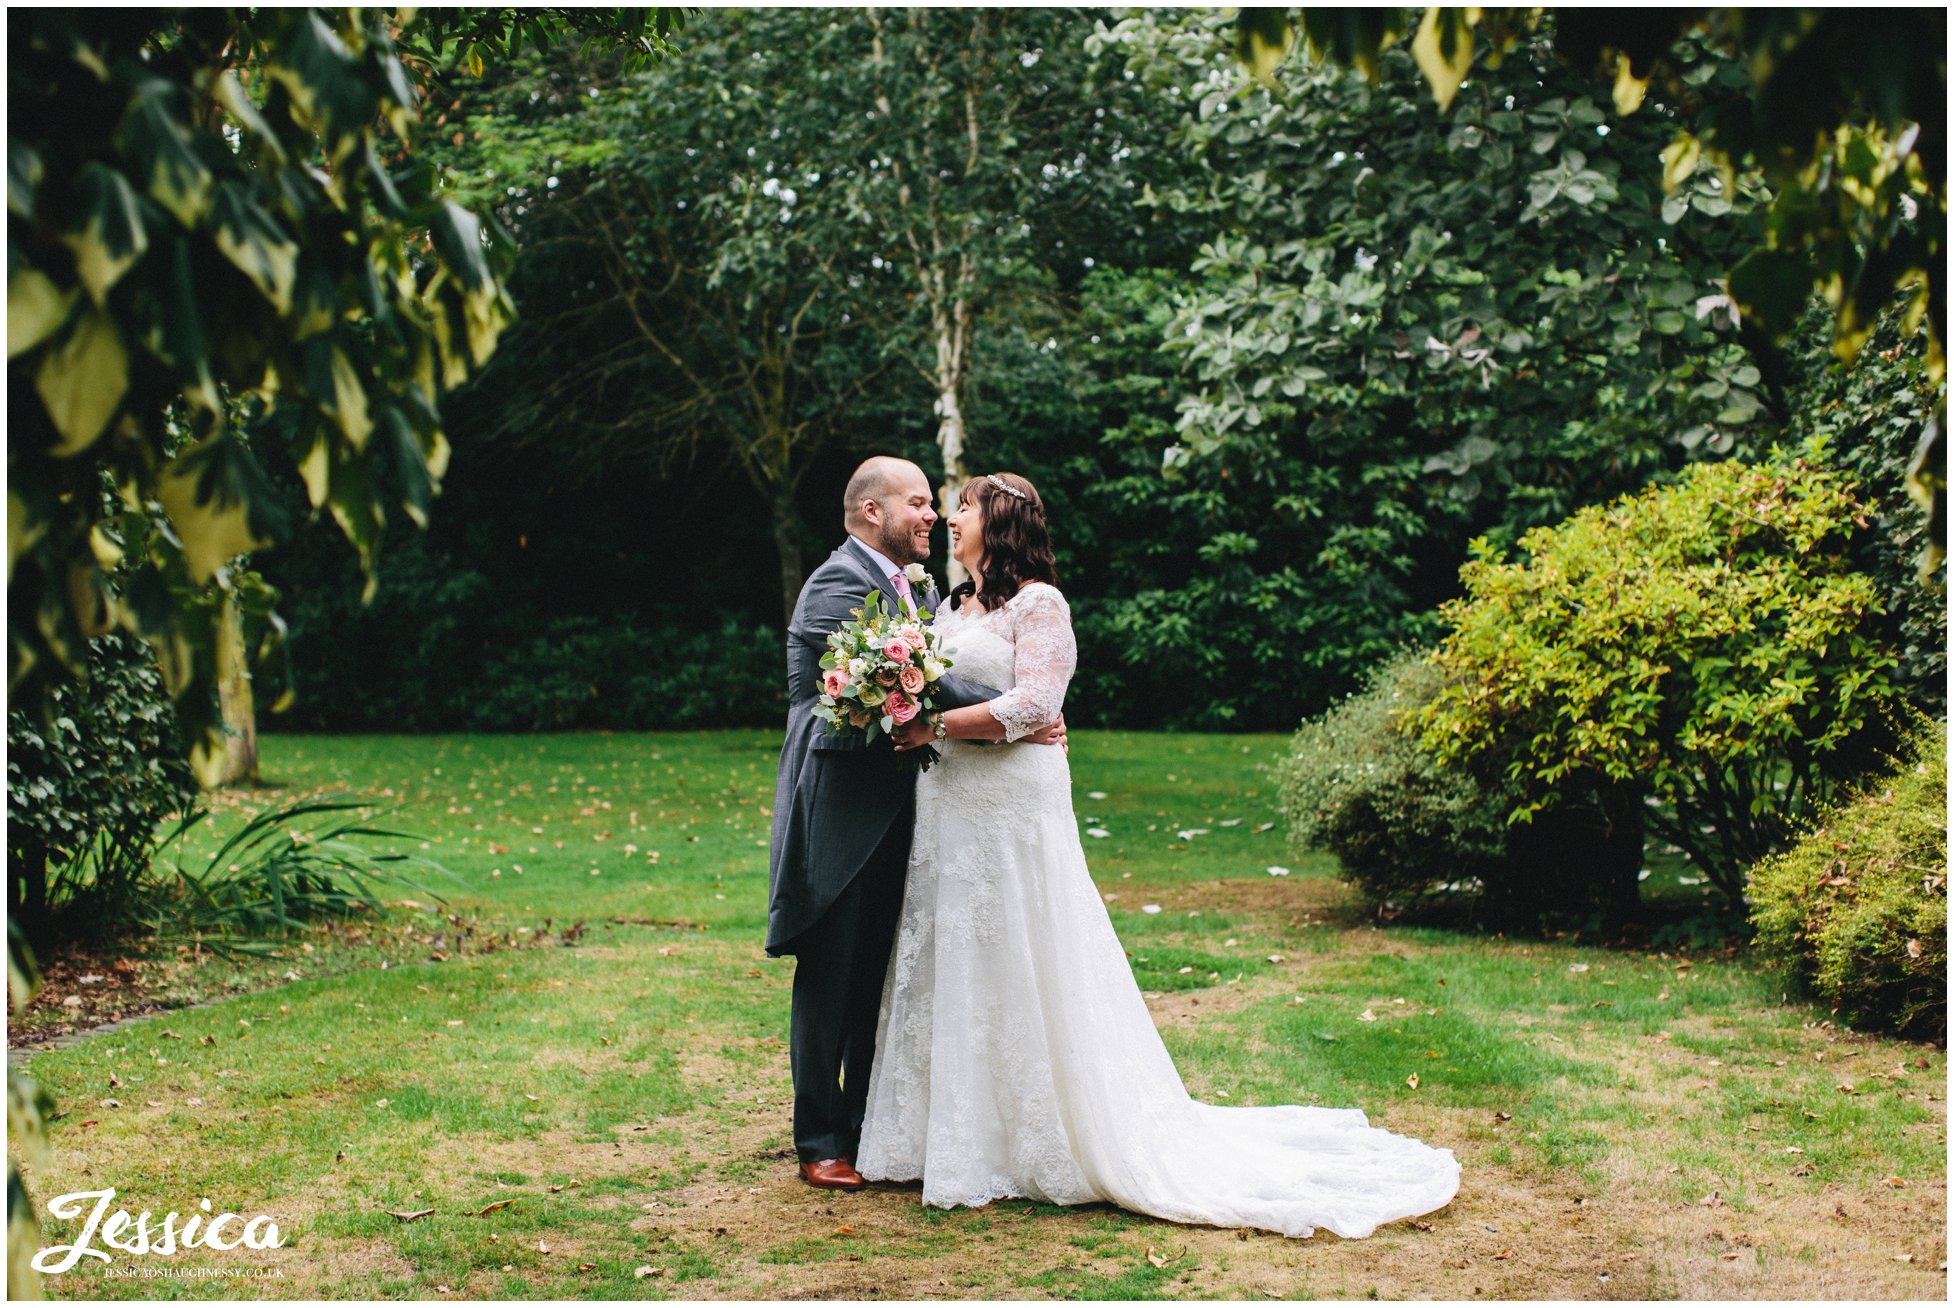 the newly wed's kiss in the gardens at nunsmere hall